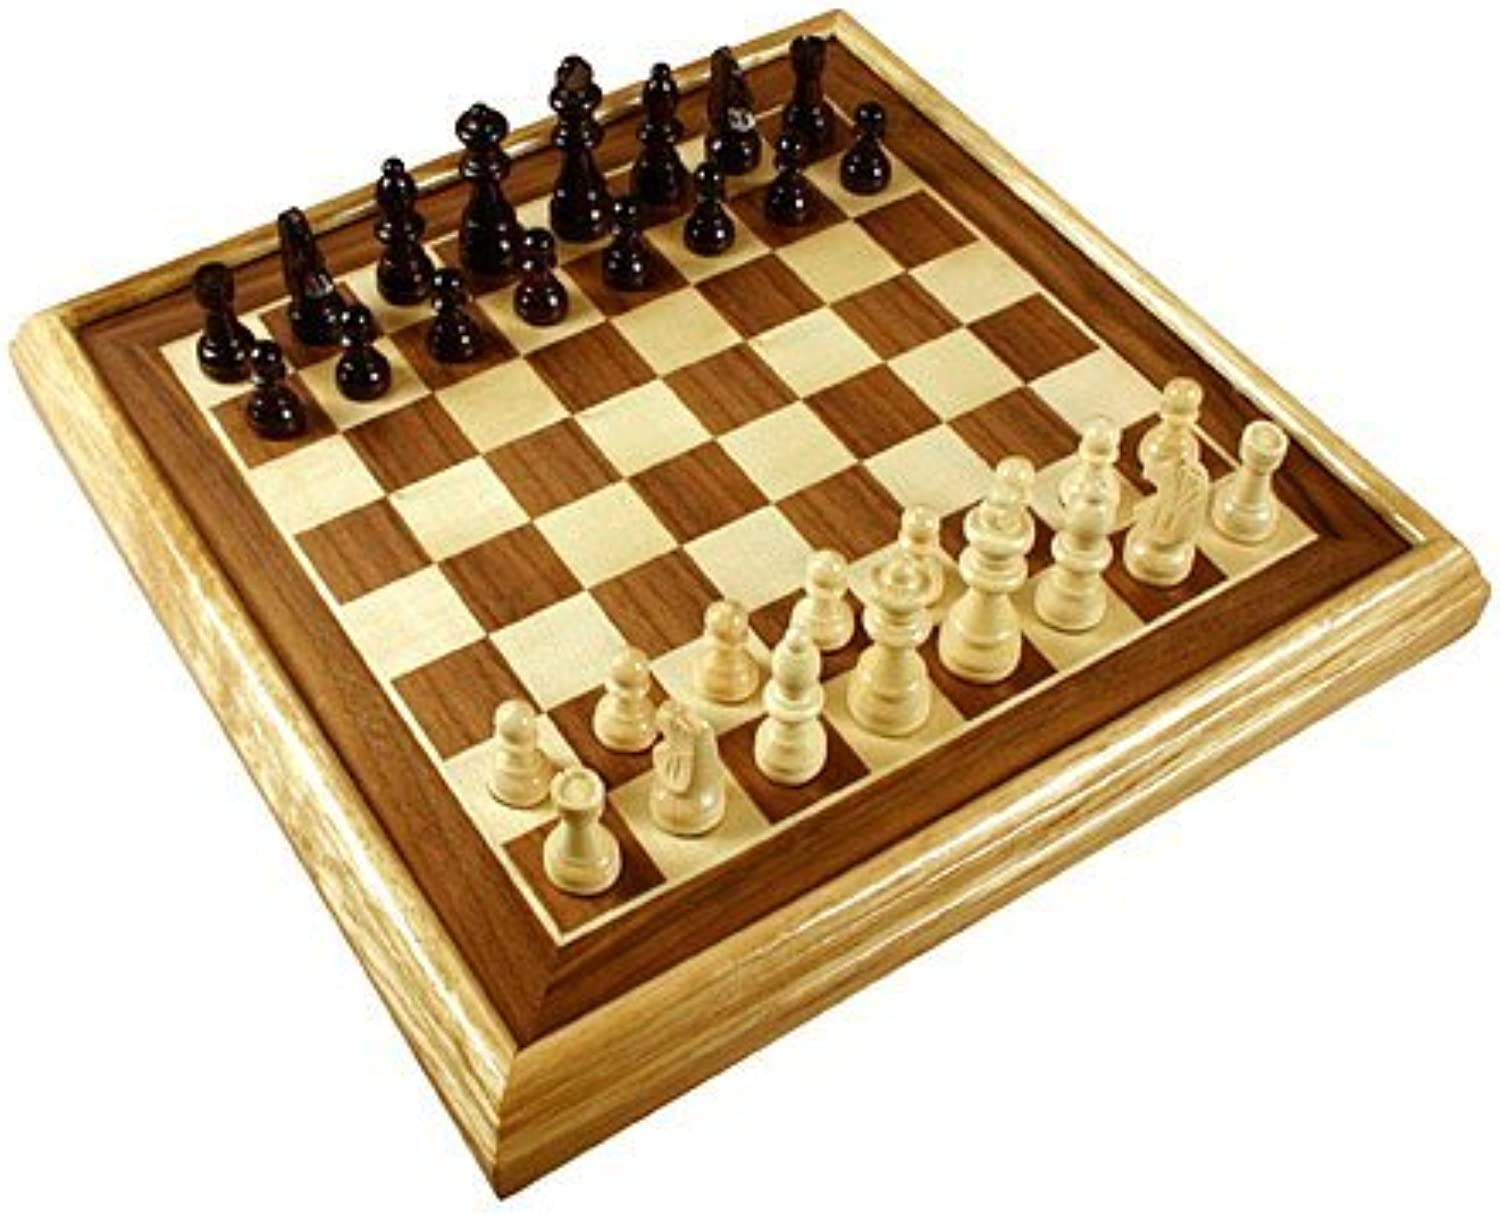 16 Deluxe Inlaid Wood Chess Set w Pieces by Da Vinci Imports